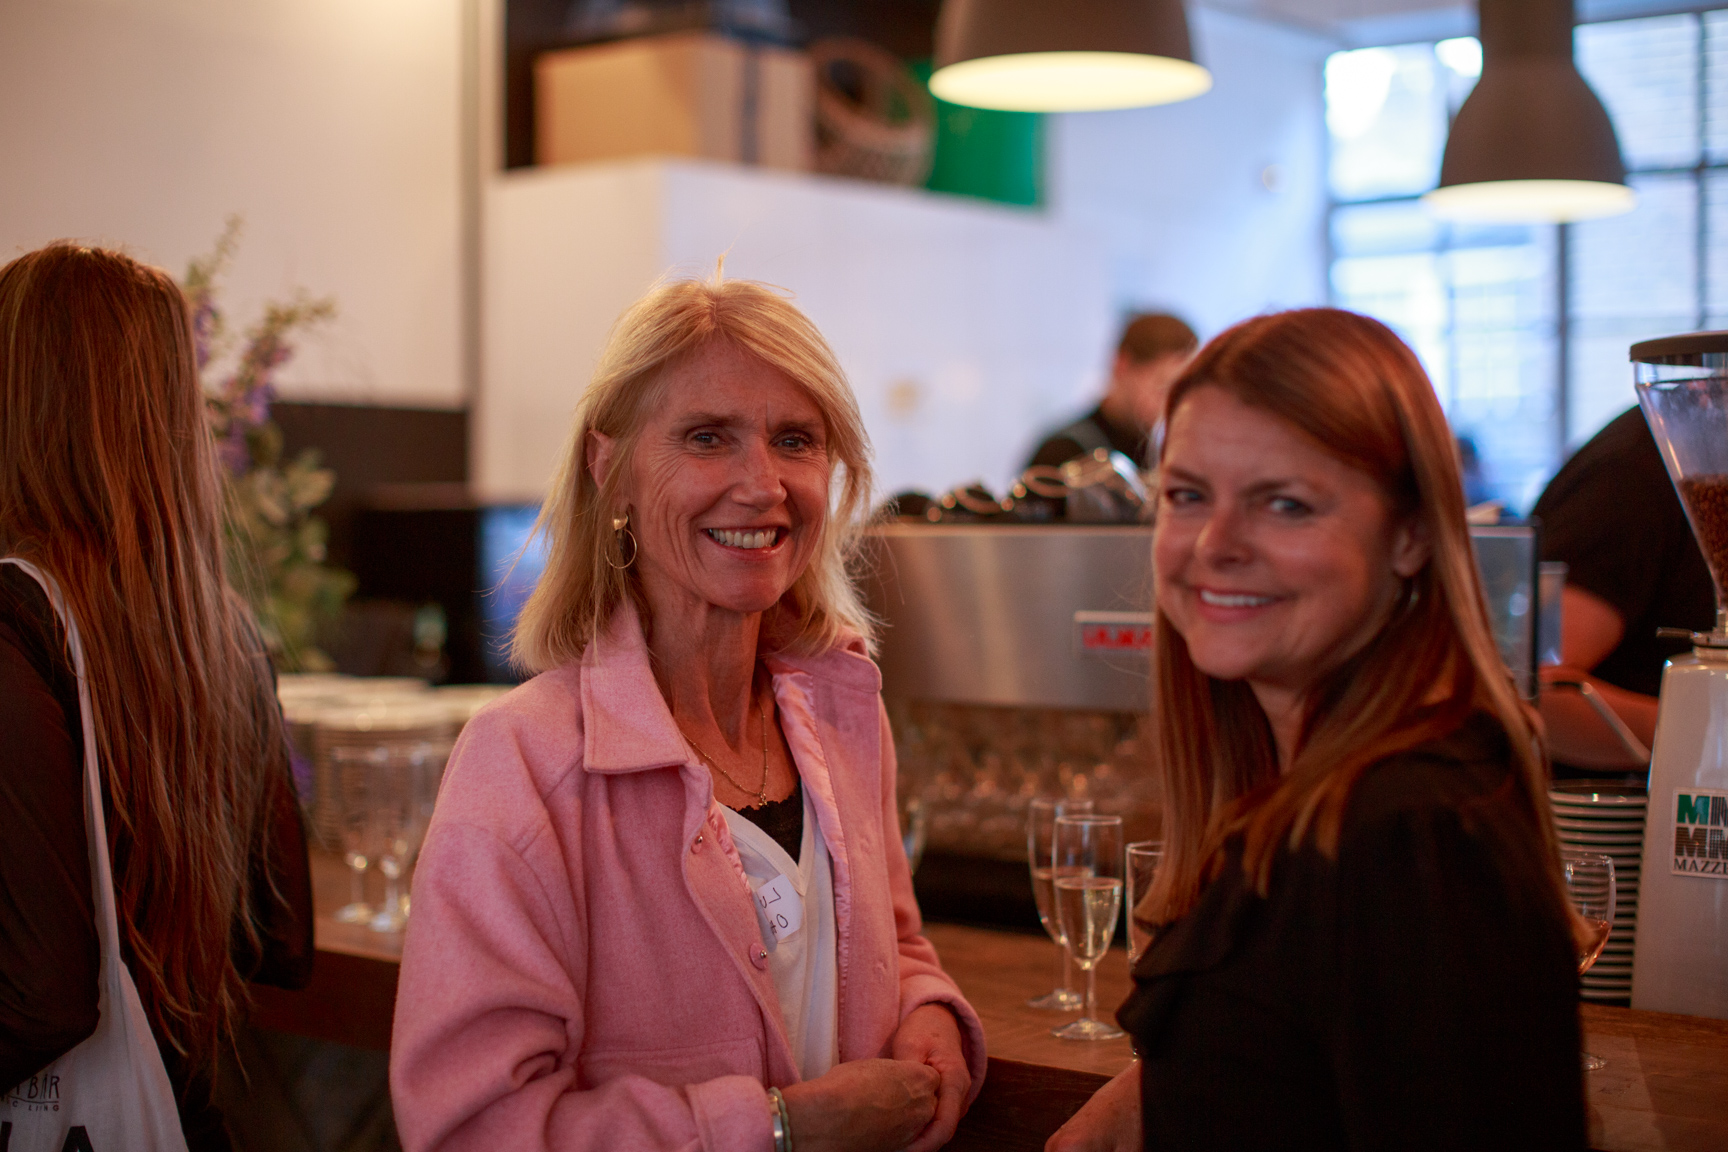 Two guests stand next to the prosecco bar smiling at the camera.